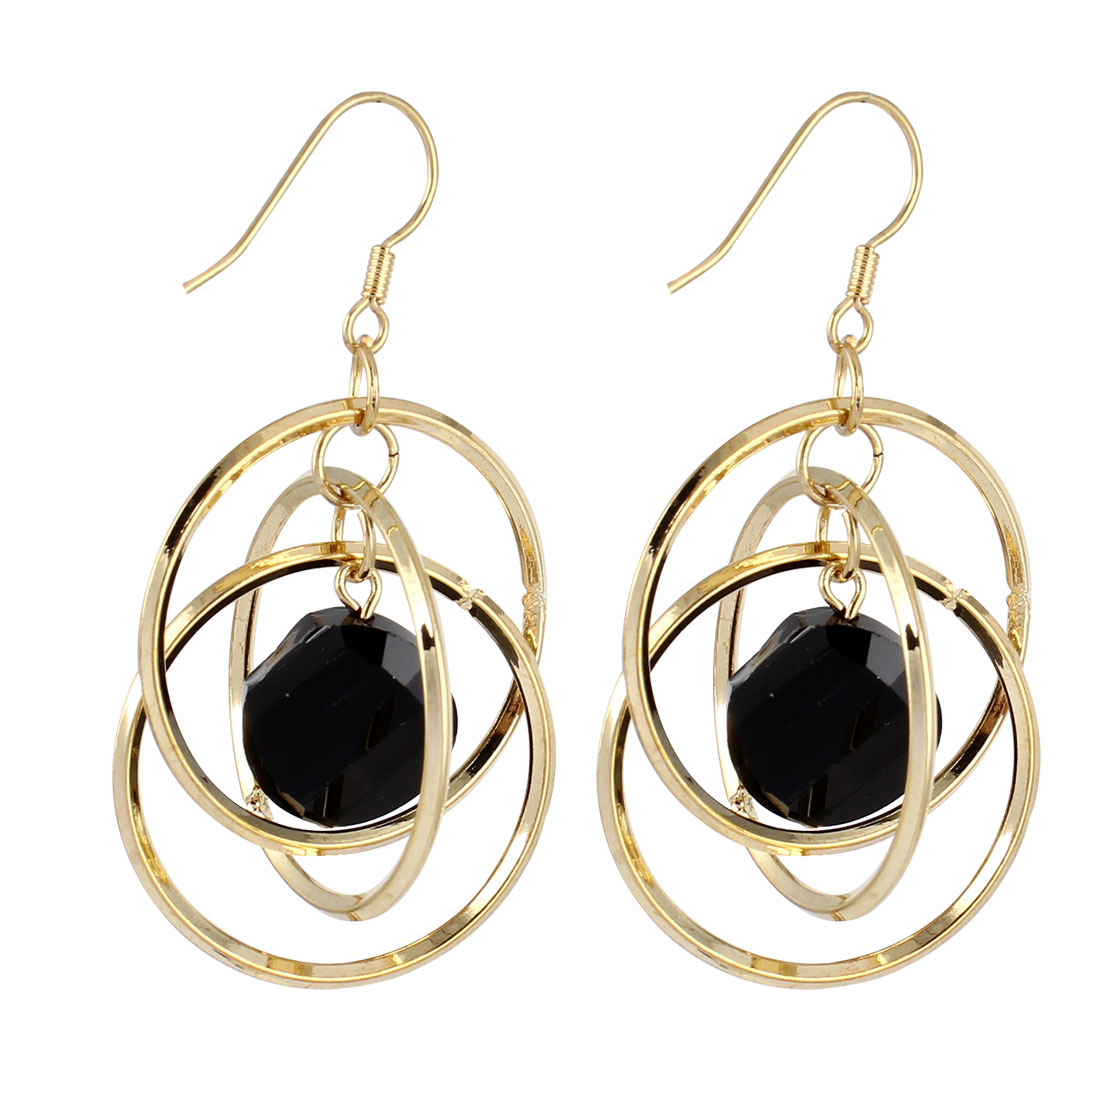 Gold Tone Metal 3 Layers 3cm Dia Ring Dangling Pendant Hook Earrings Pair for Lady